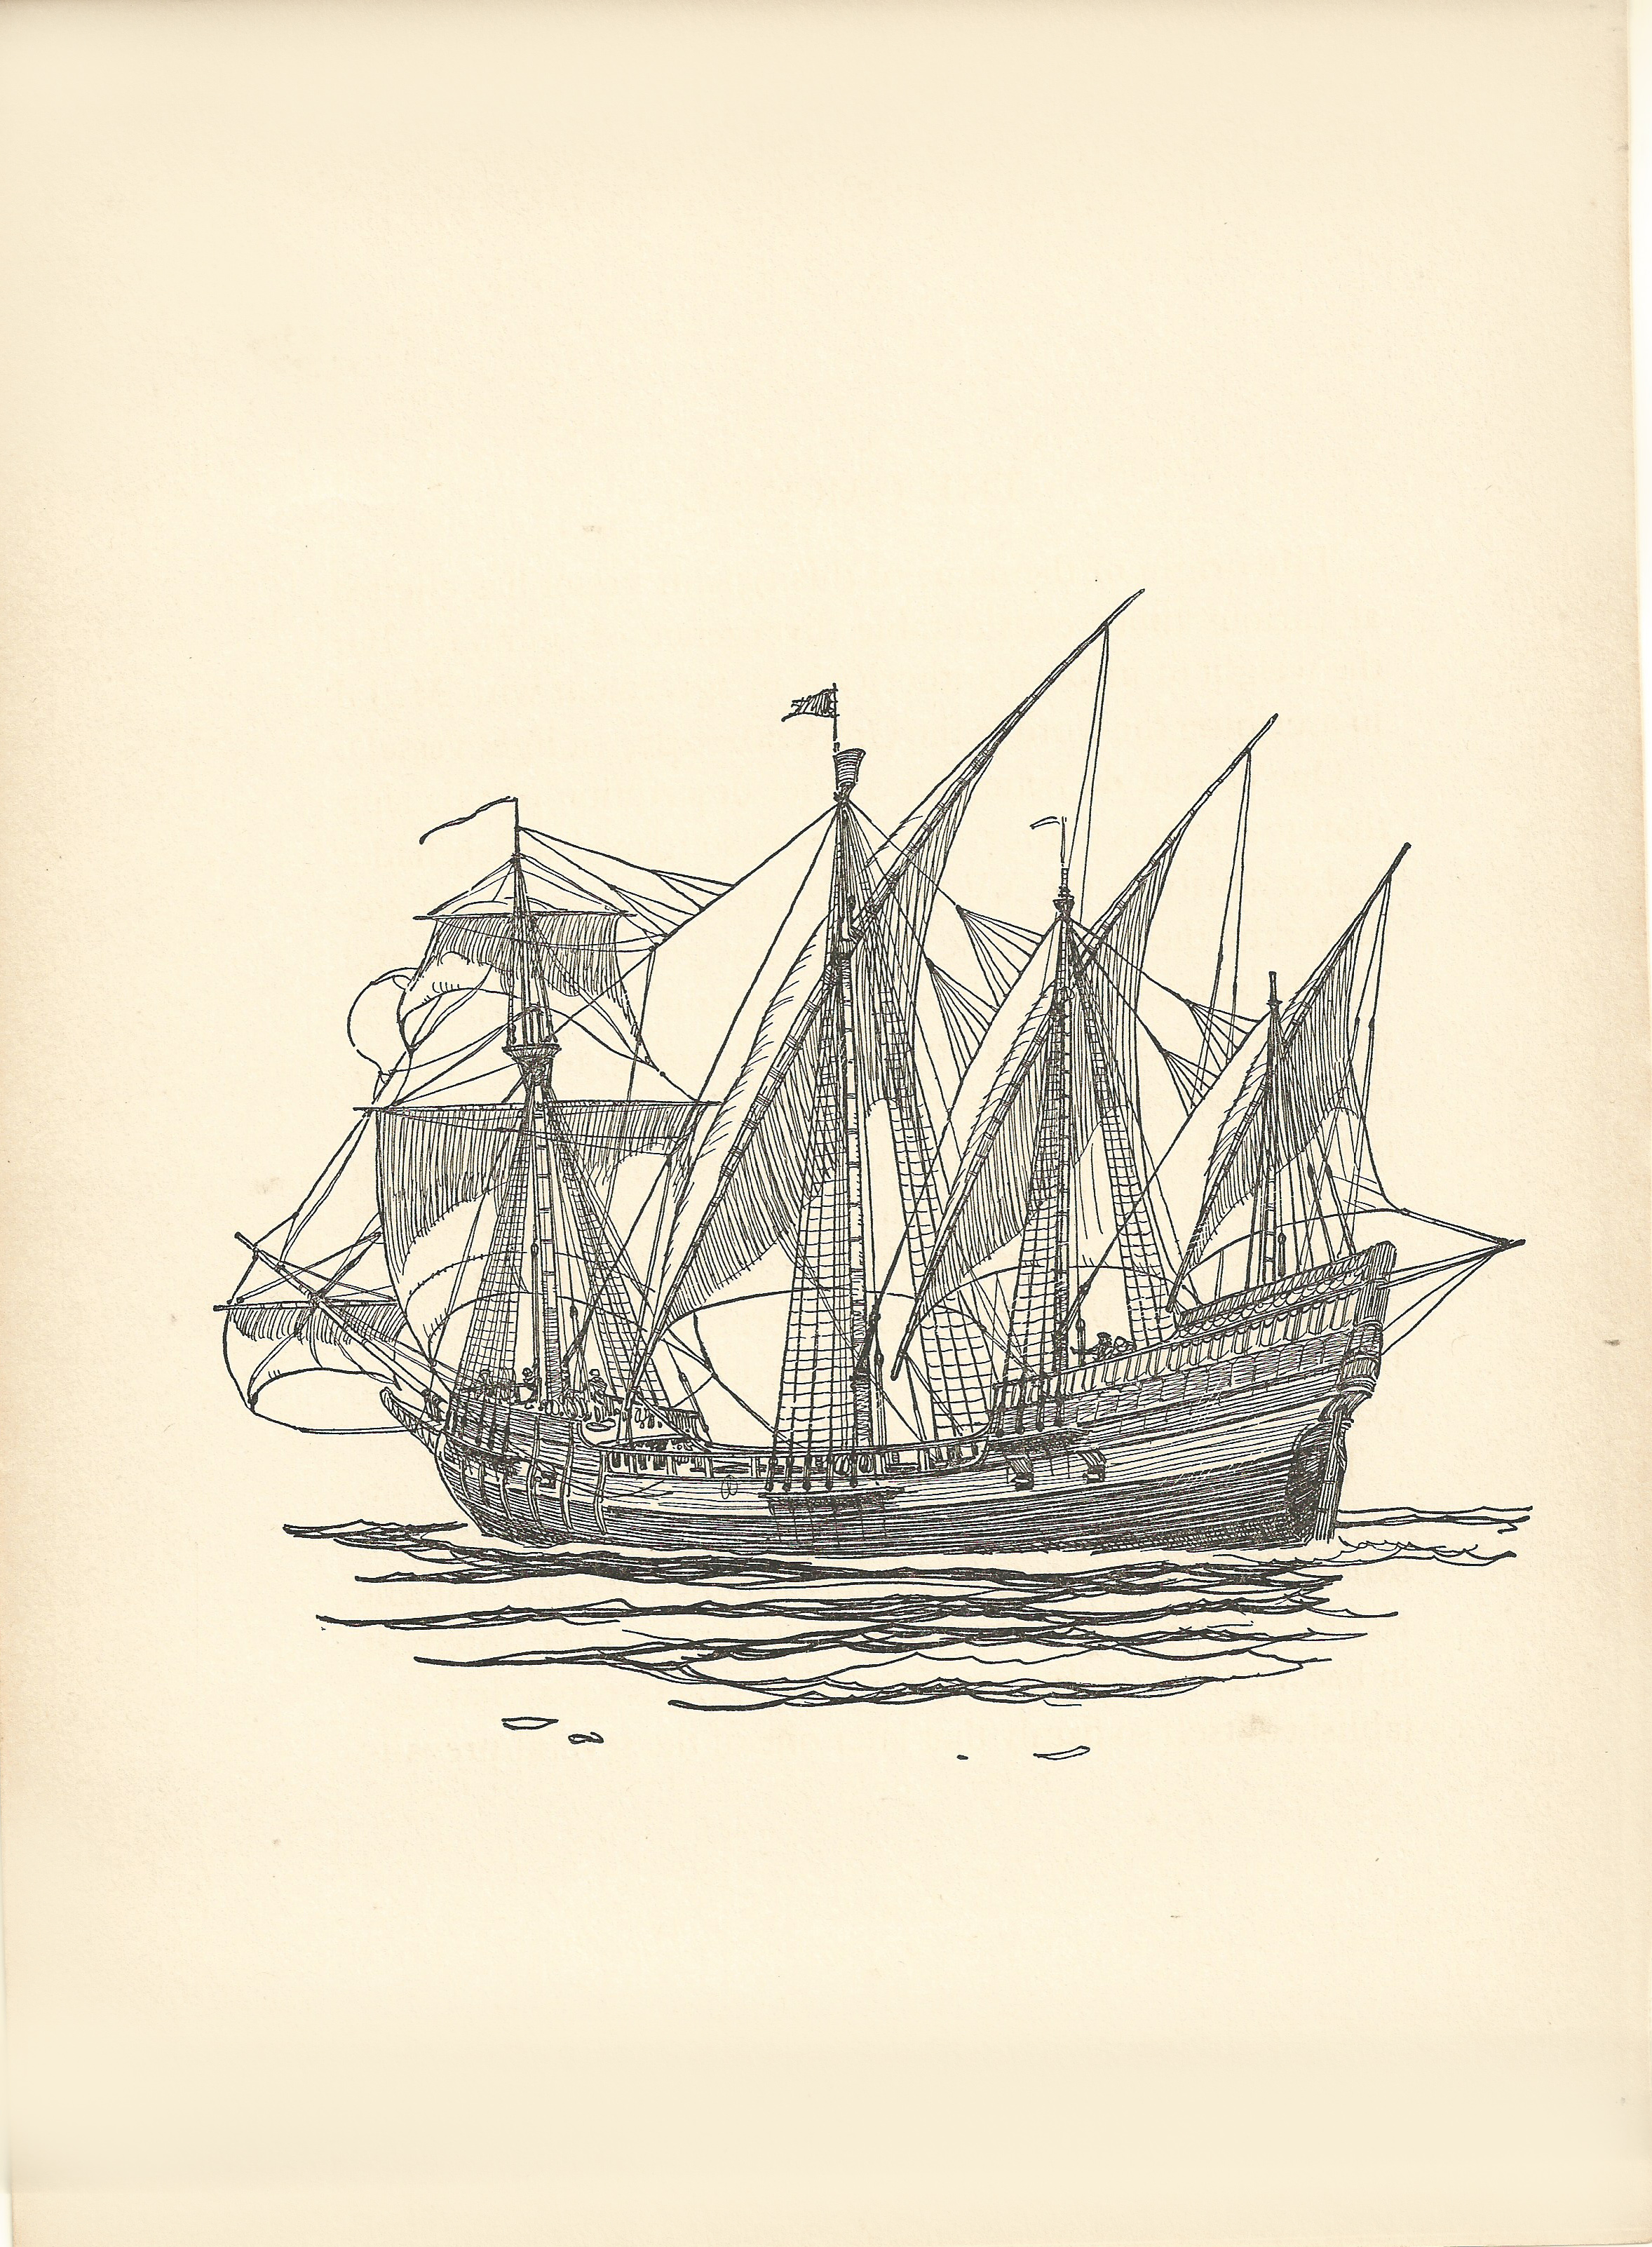 2356x3204 The Caravel , 7 X 11 Print On Paper. From The Book Of Old Ships